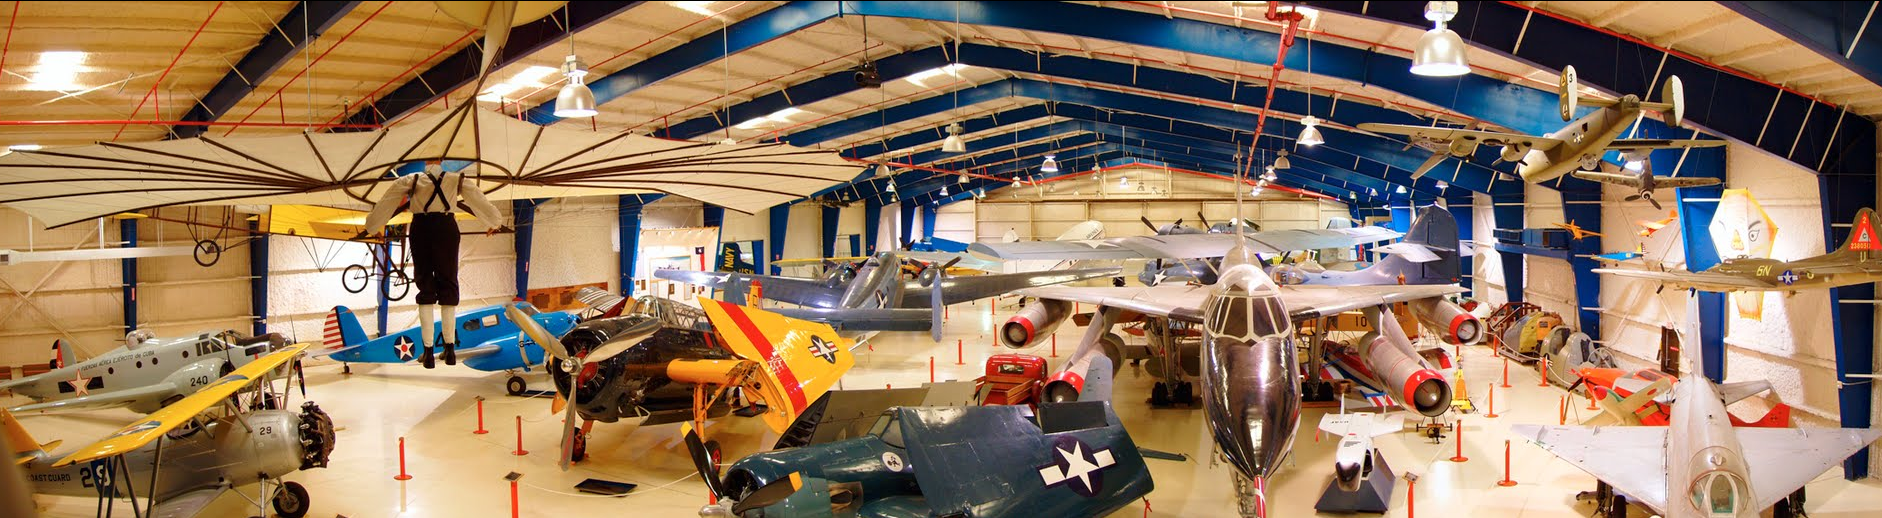 Lone-Star-Flight-Museum-Galveston-Texas-